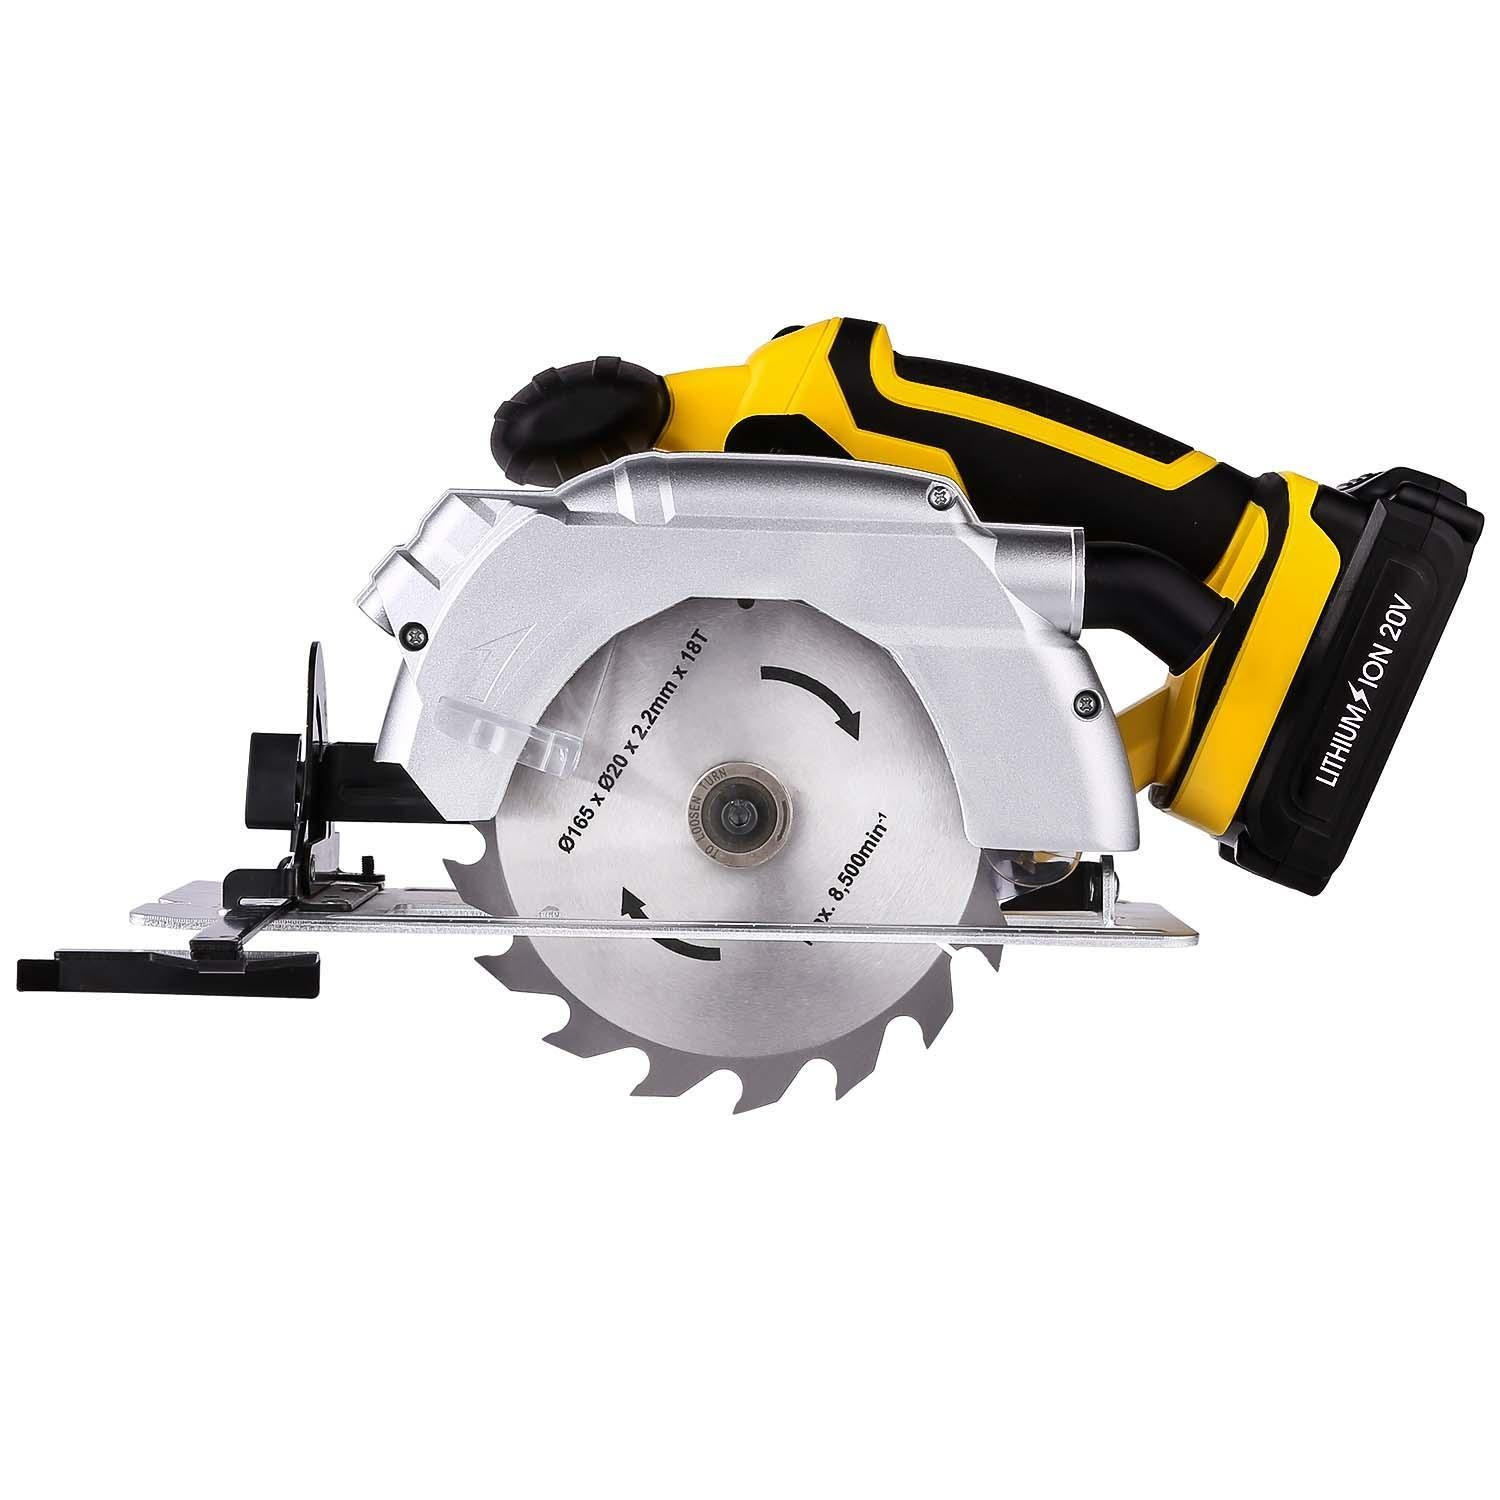 20v Electric Circular Saw,165mm Lade Cutter Bar (20 mm) Wood Cutting Tools, Spindle Lock Laser, Protection Board Bevel, Guide and Carbide-Tipped Blade [US STOCK]